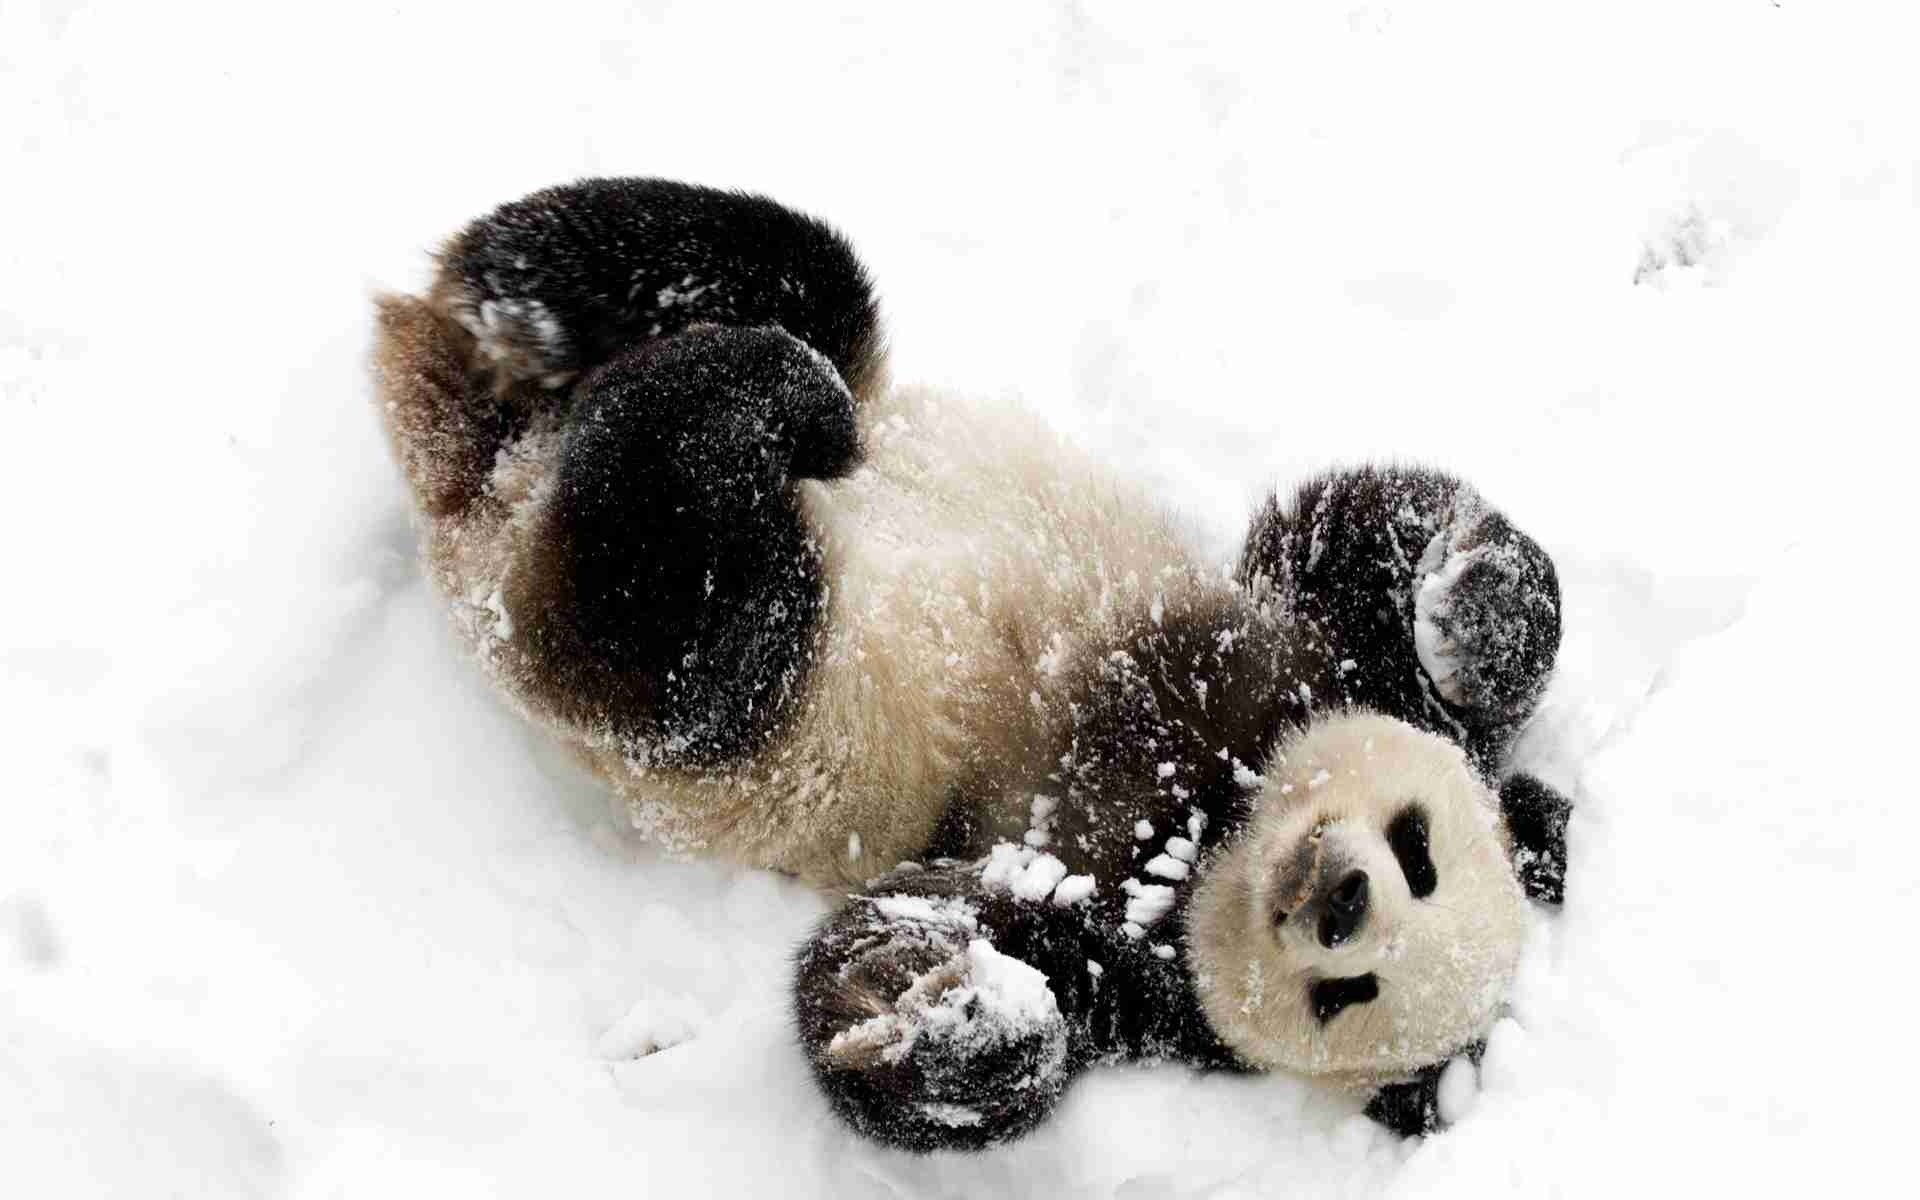 Baby Panda In Snow Wallpapers 1080p with High Definition Wallpaper